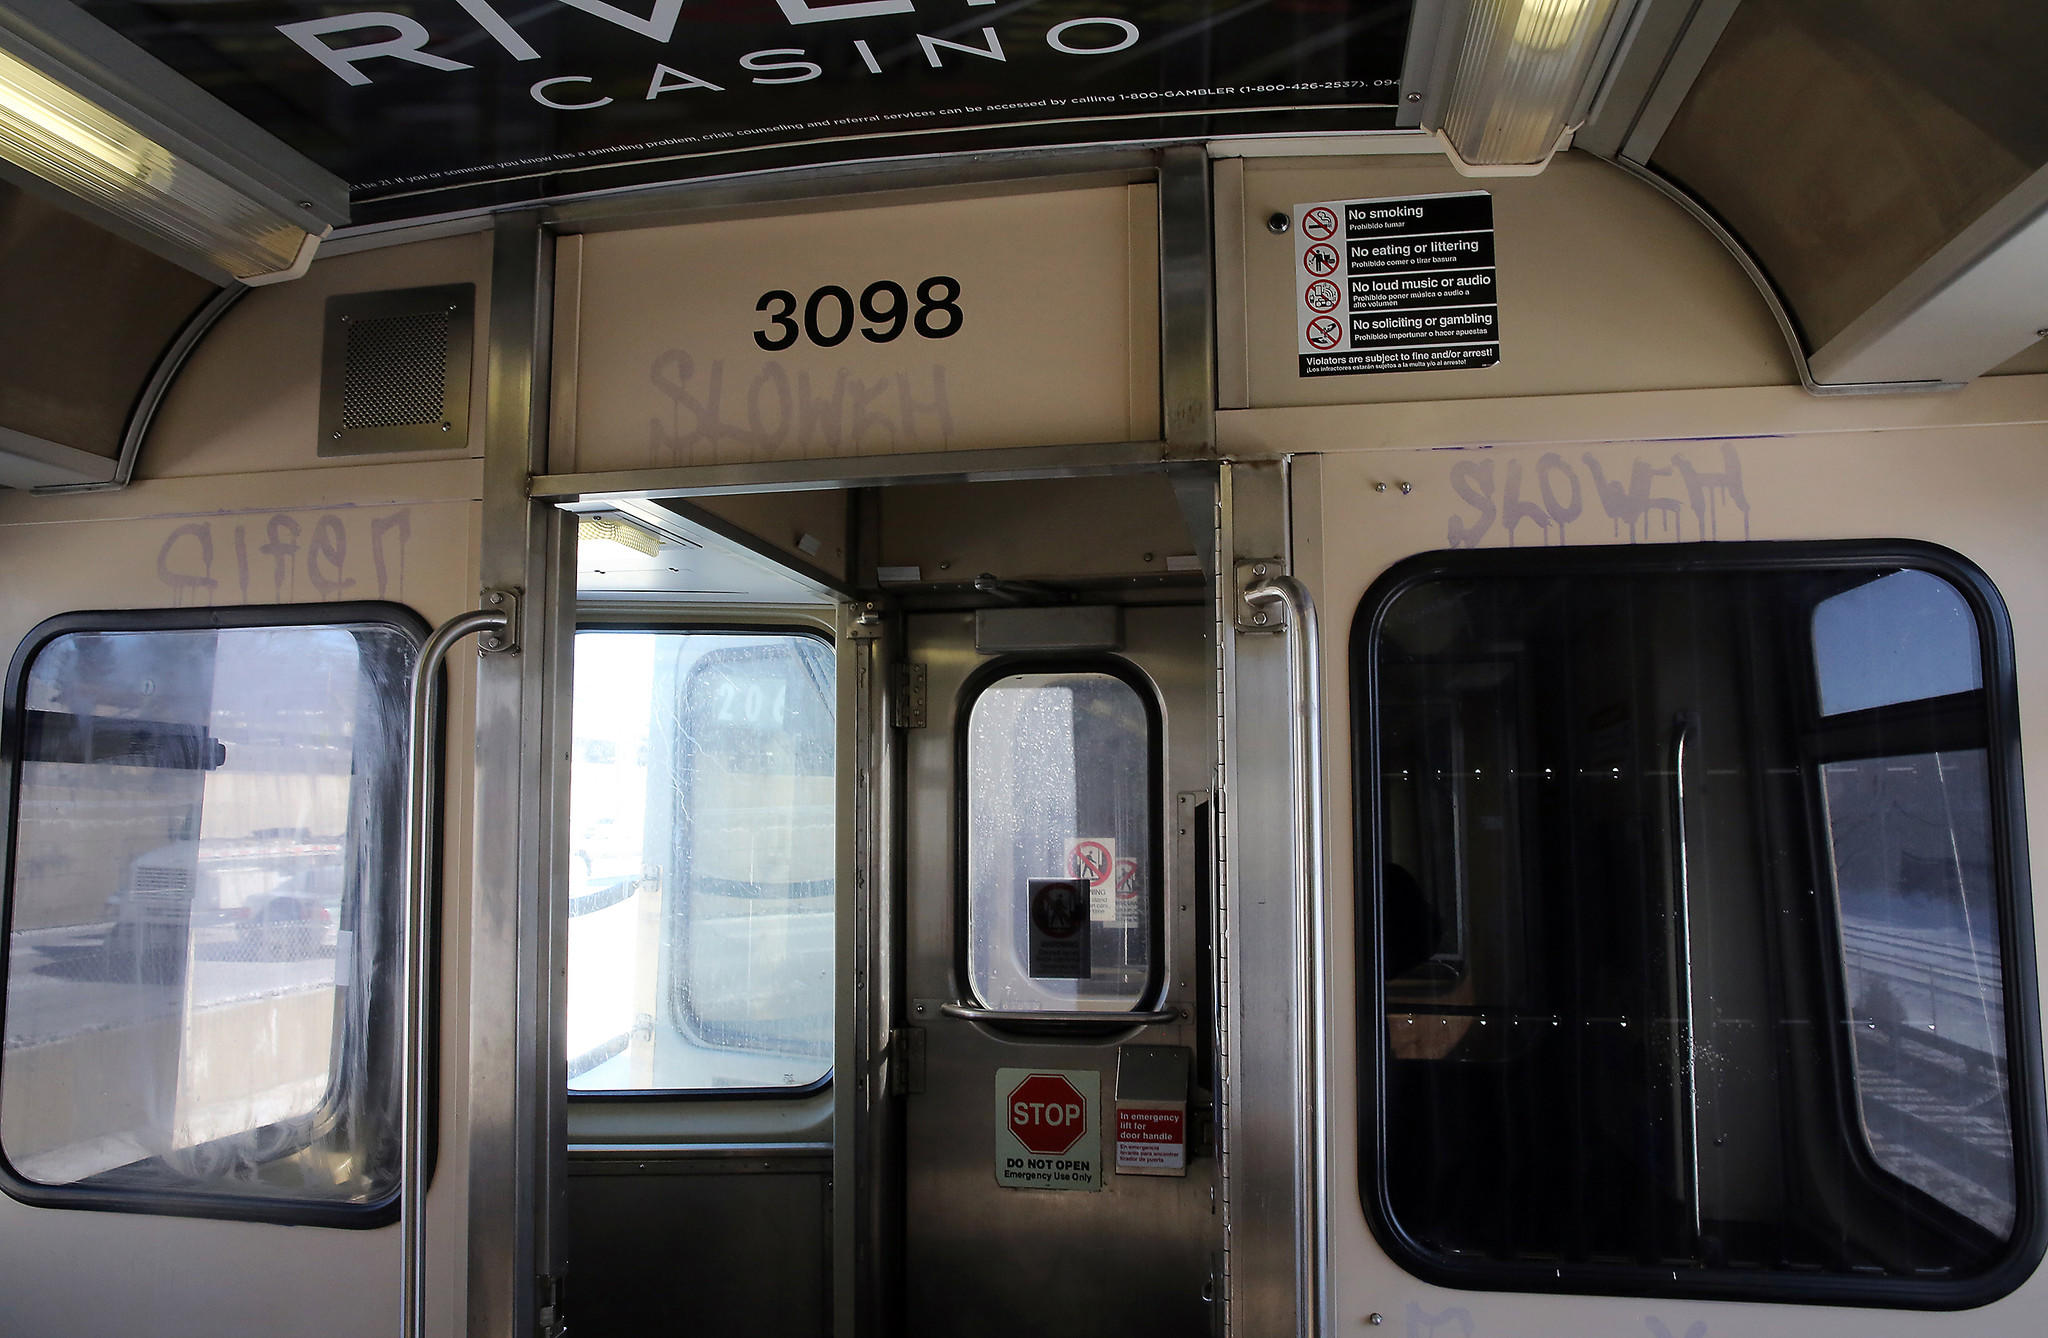 Blue line CTA rail car with graffiti.